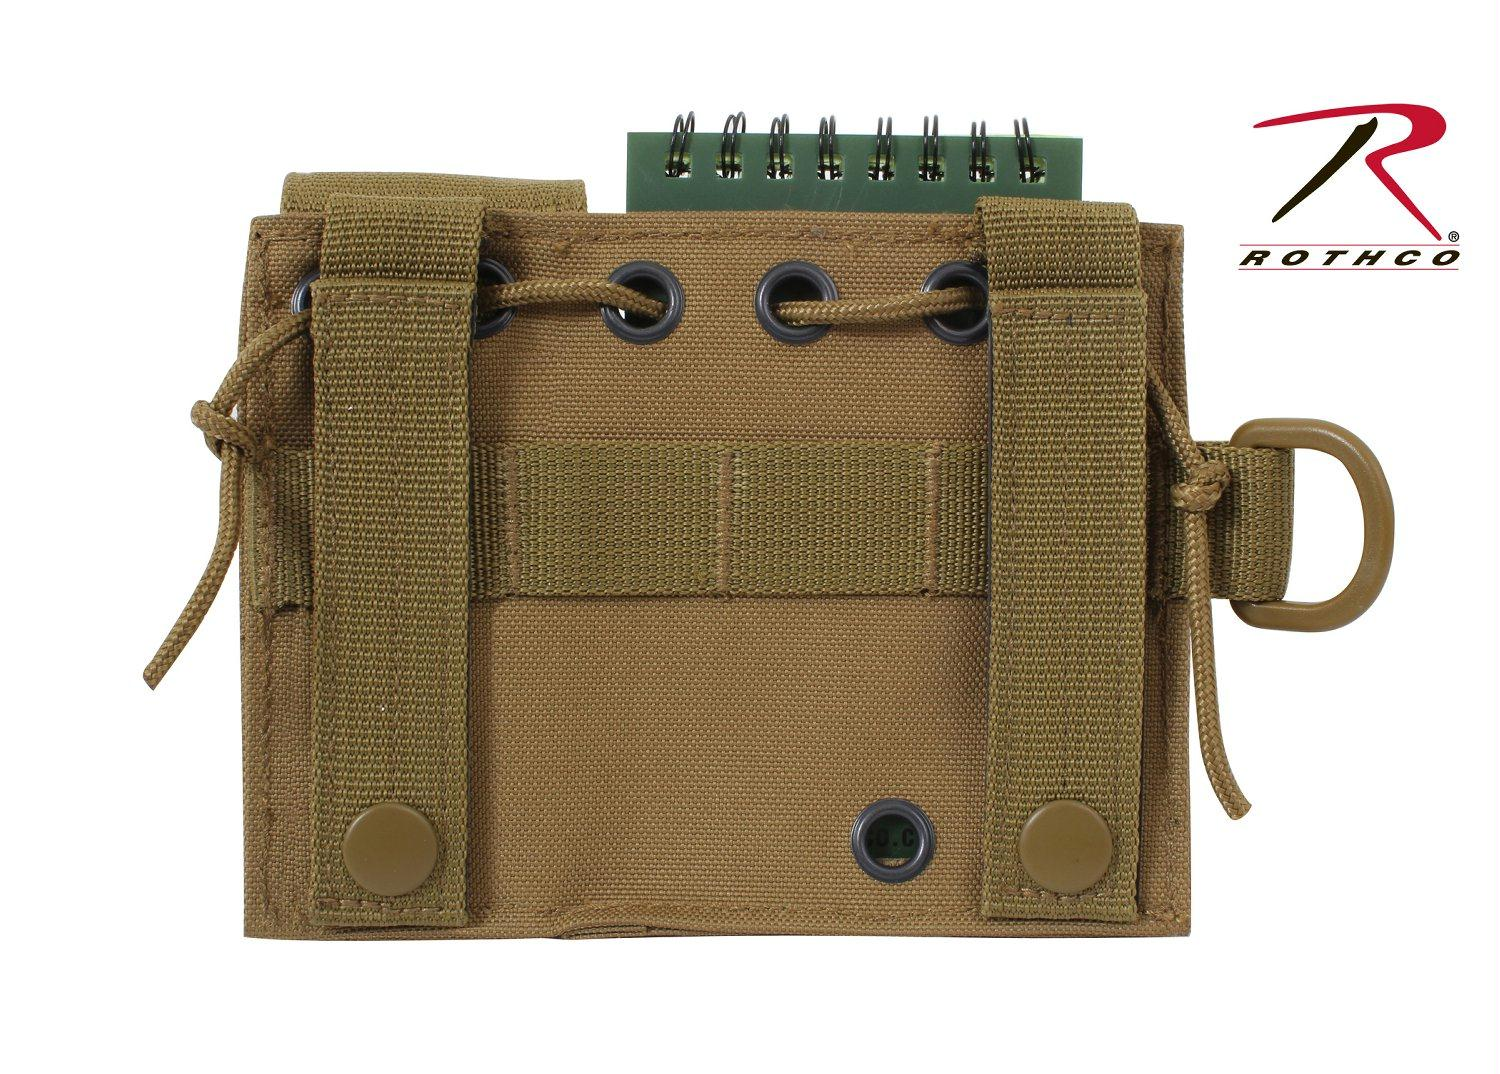 Rothco MOLLE Administrative Pouch - Coyote Brown